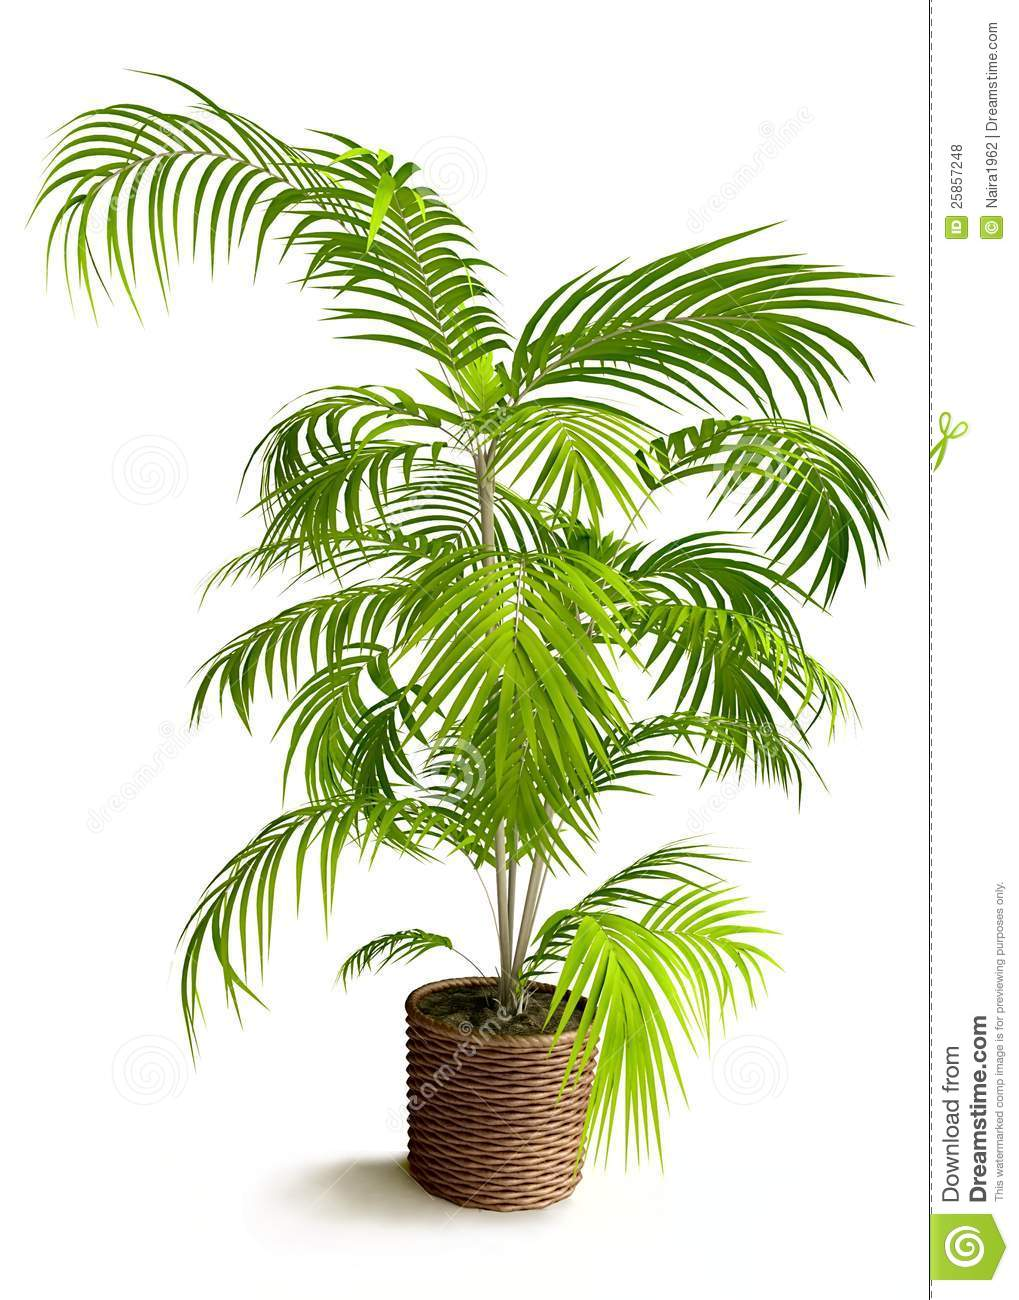 We Made You A Tropical House Name Generator 2 as well Garden Making Decorations House Plants Design Ideas Indoor With Images Small Leafs Put On The besides Tropical House Plants further All Forest Plants in addition Piante Appartamento 30894. on picture names tropical houses plants